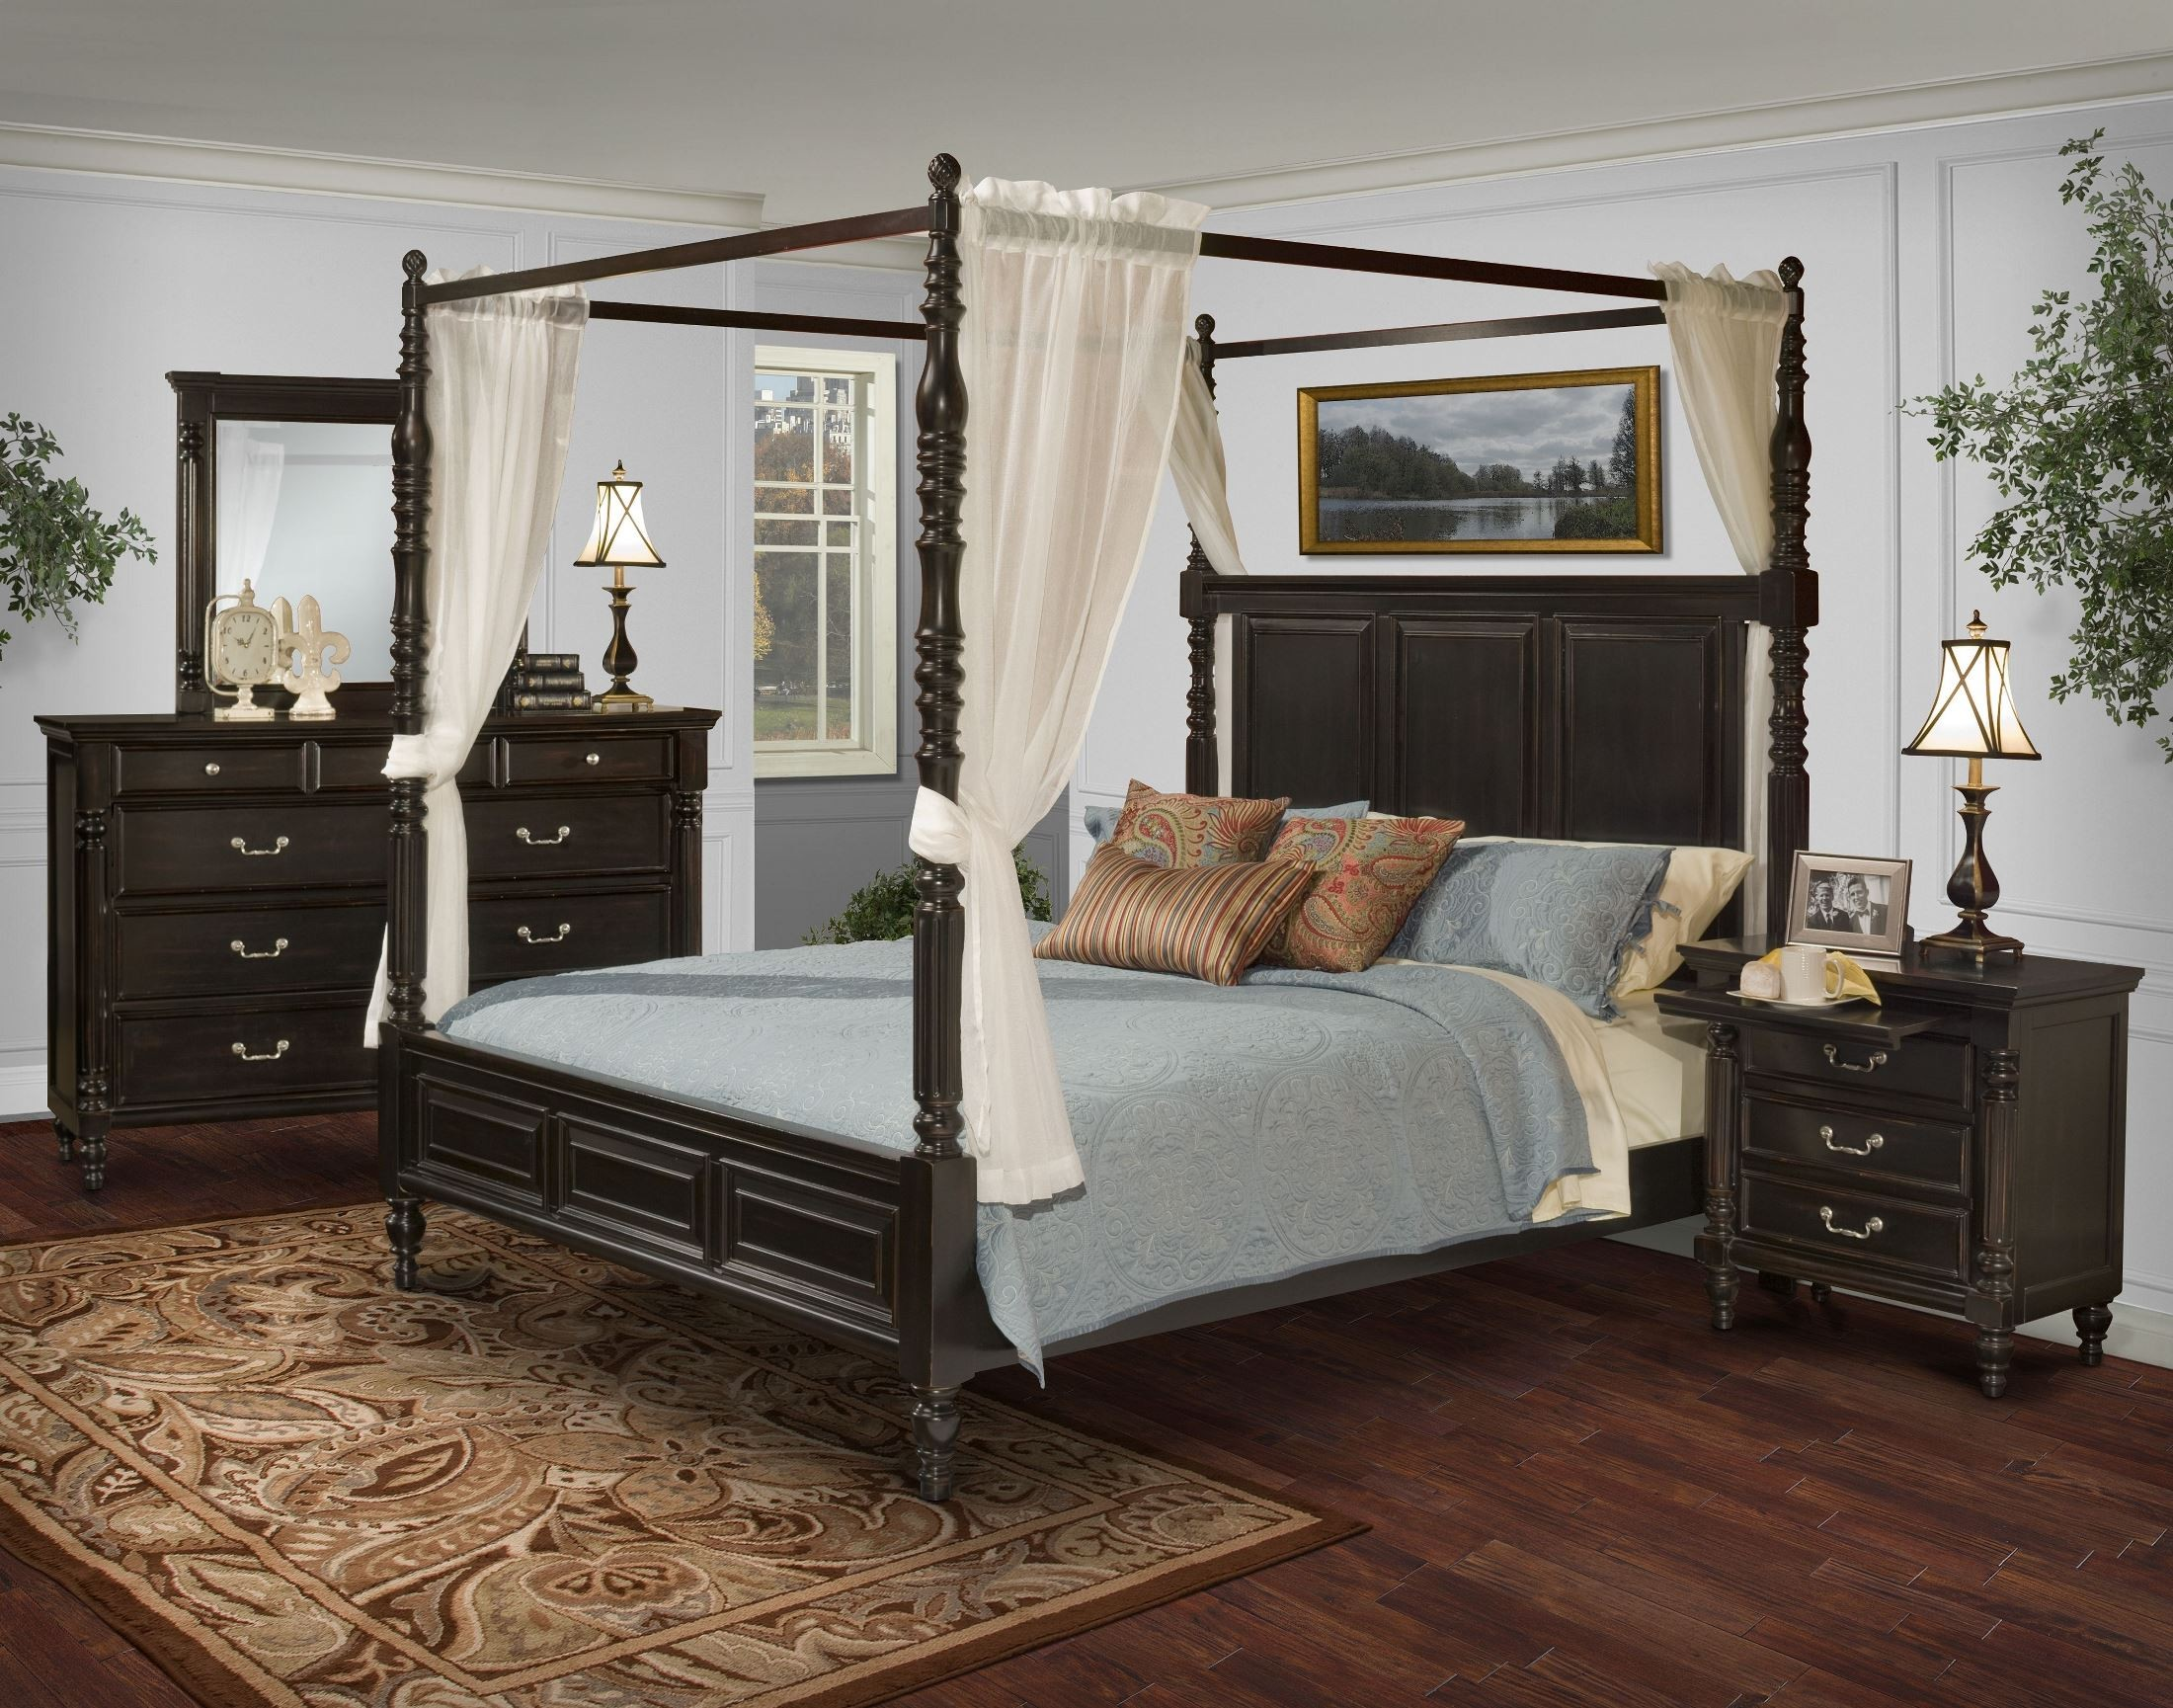 Martinique rubbed black canopy bedroom set with drapes for Gourmet furniture bed design